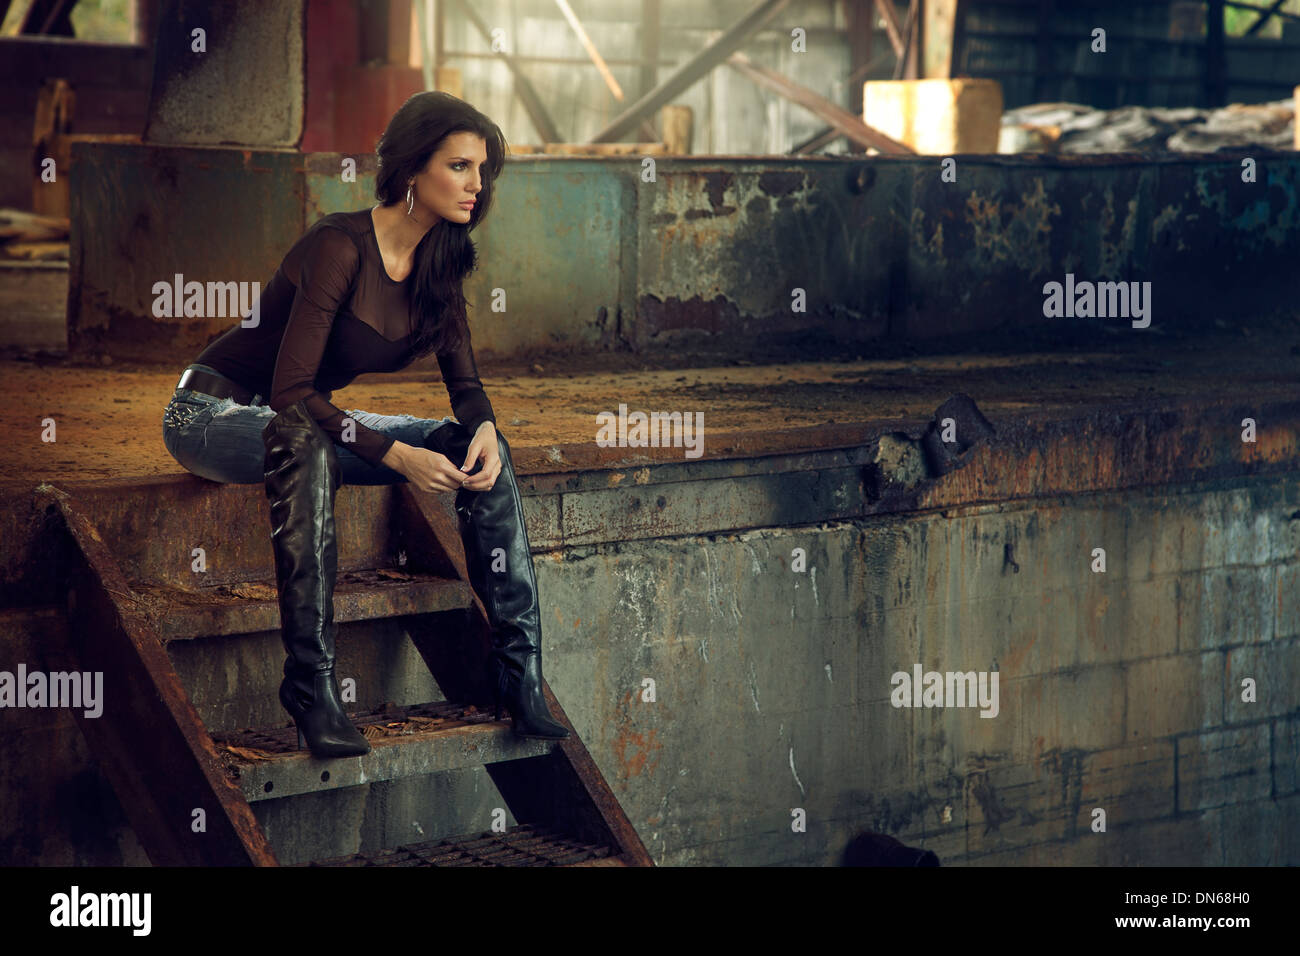 Woman sitting on rusty staircase inside an abandoned warehouse - Stock Image